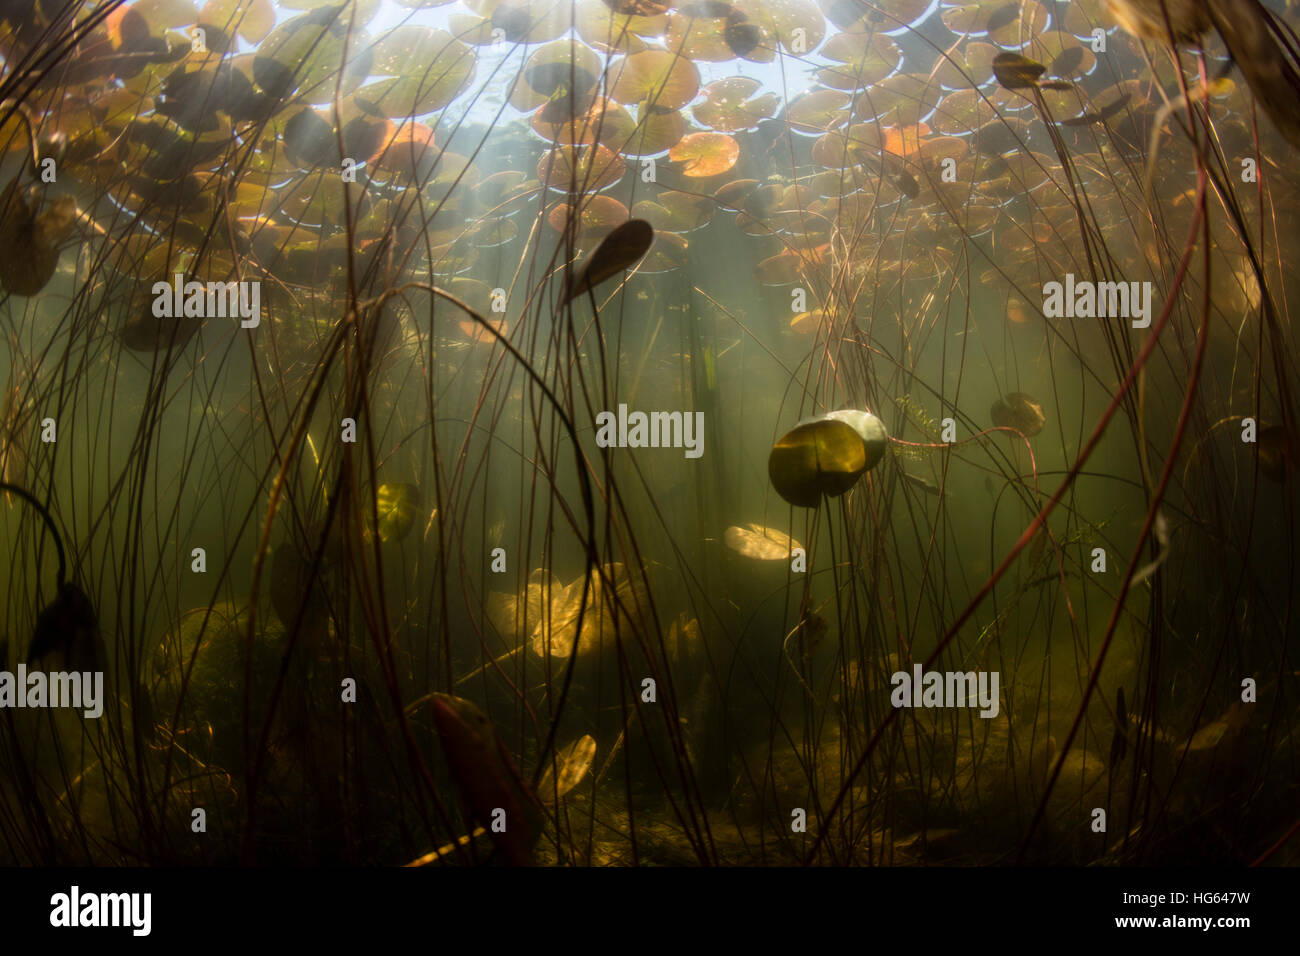 Sunlight shines on lily pads along edge of a freshwater lake in New England. - Stock Image